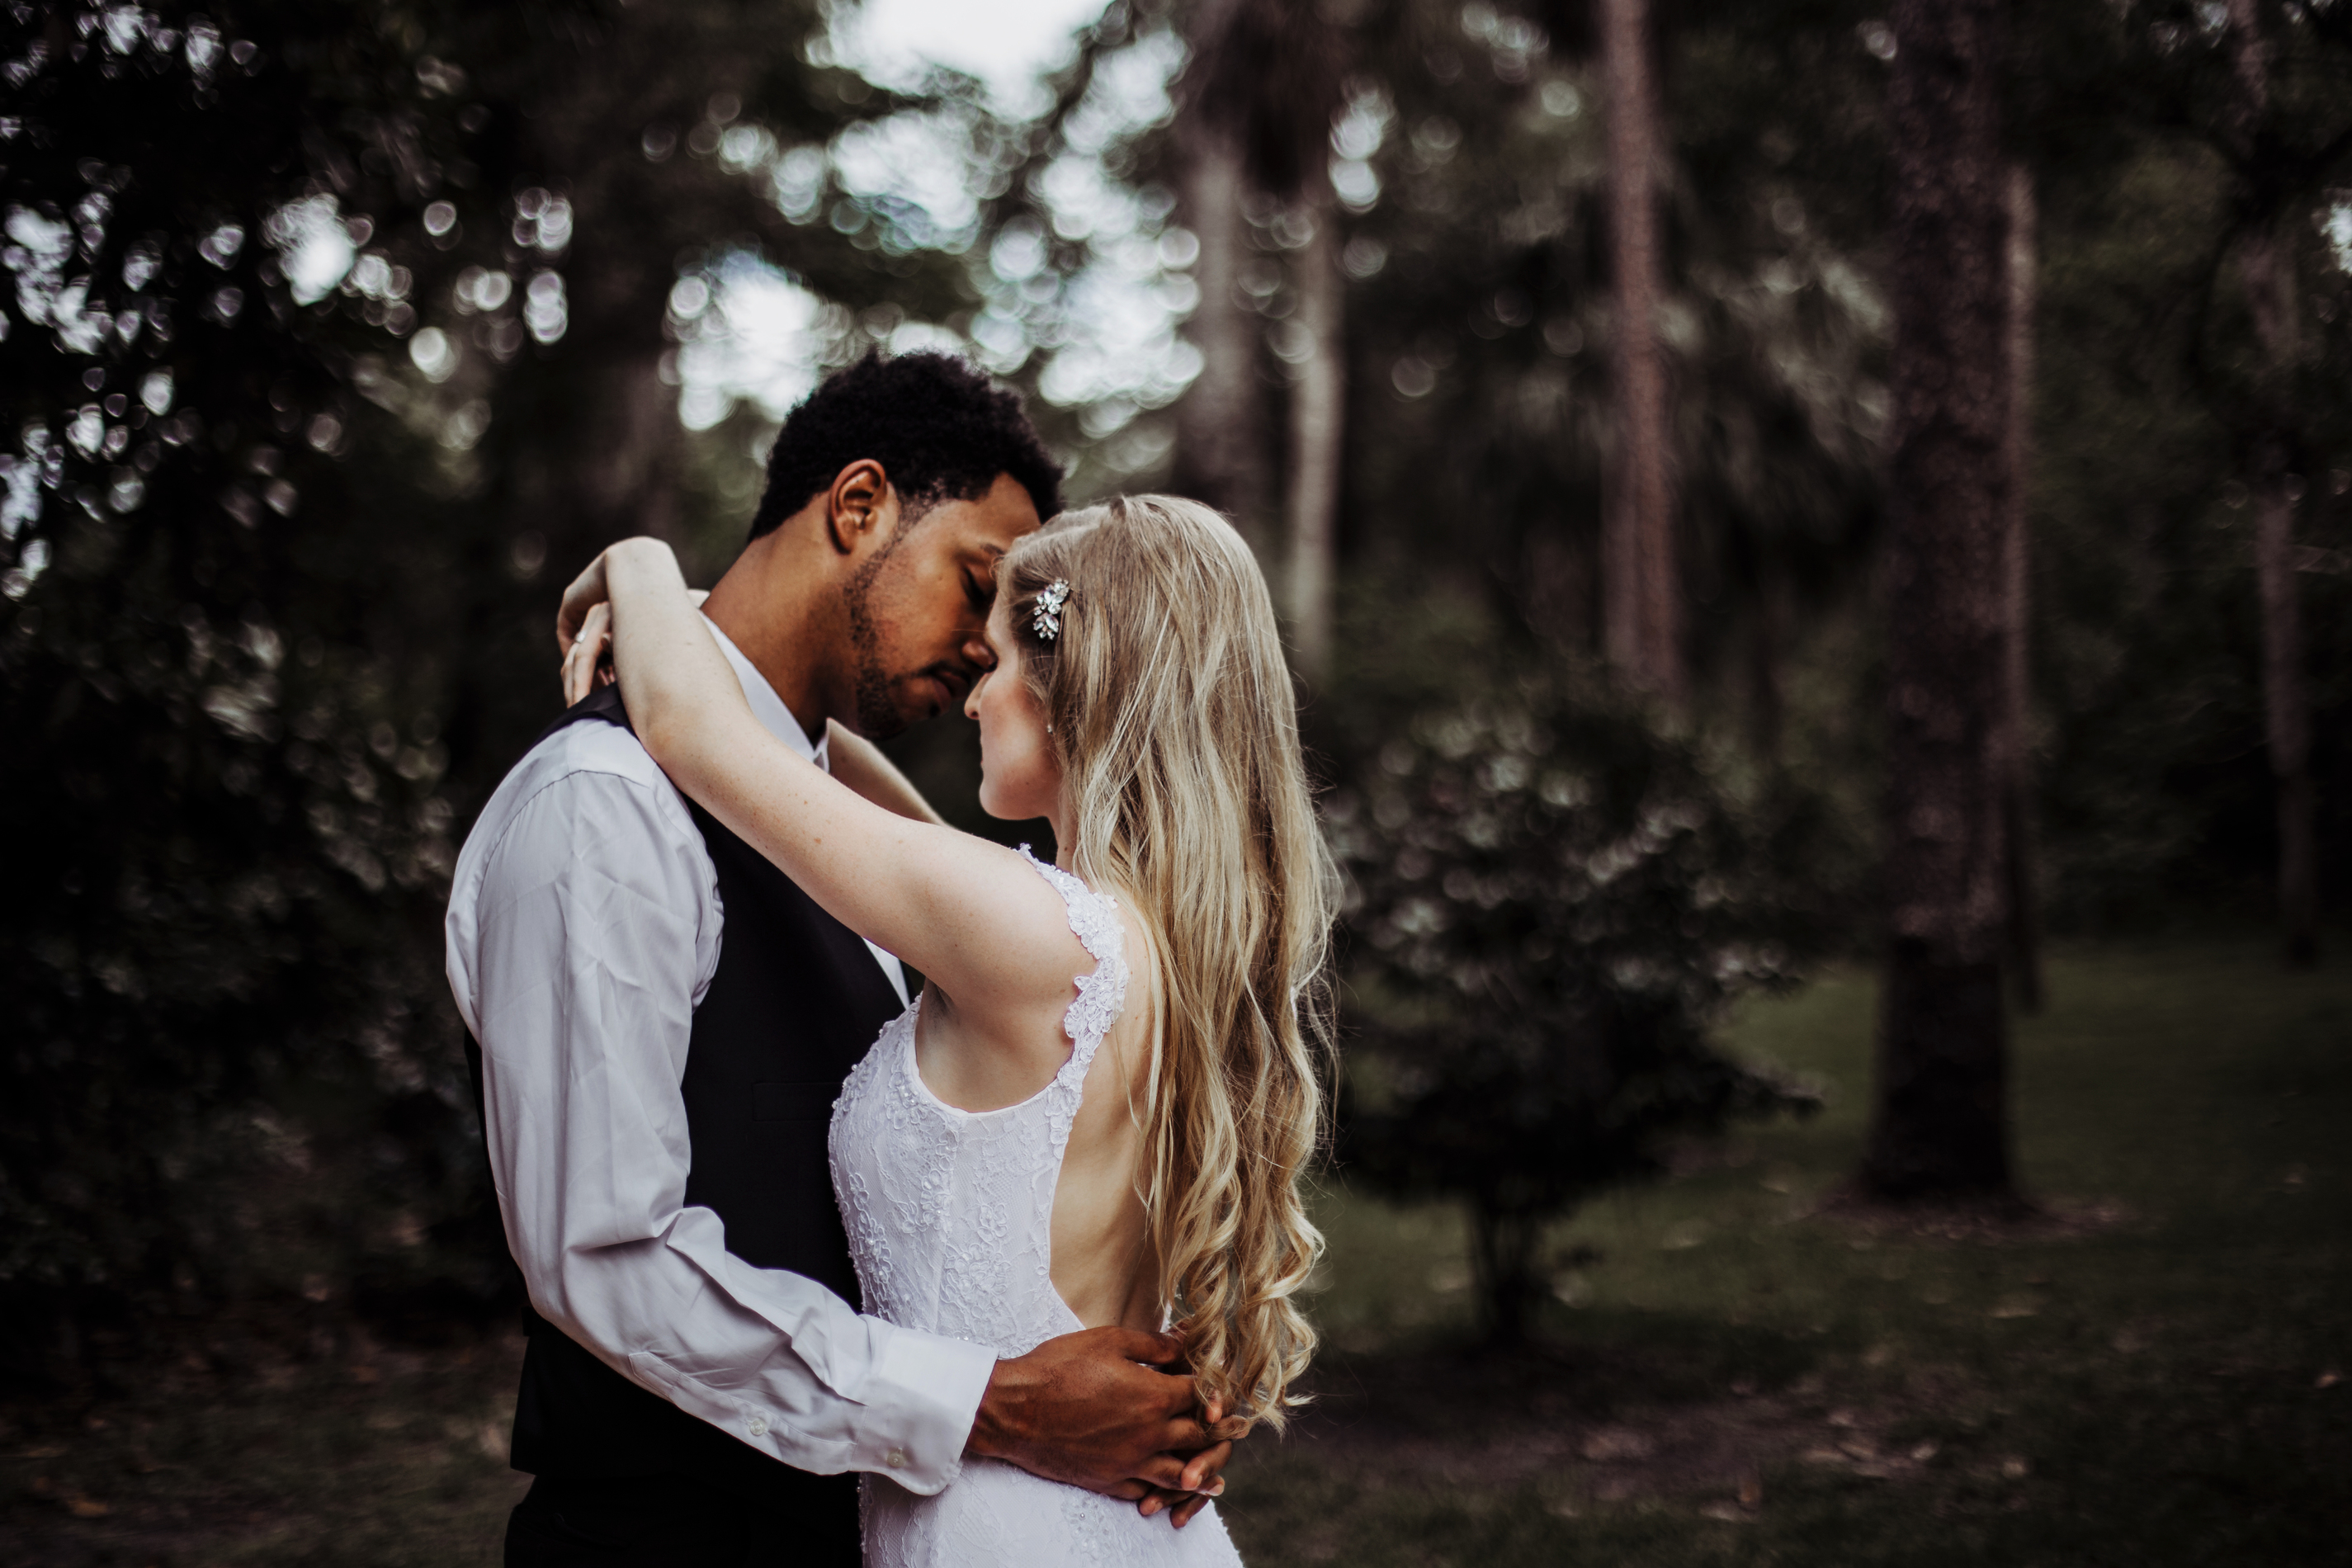 Wedding Photography & Engagement Photography, bride and groom in forest